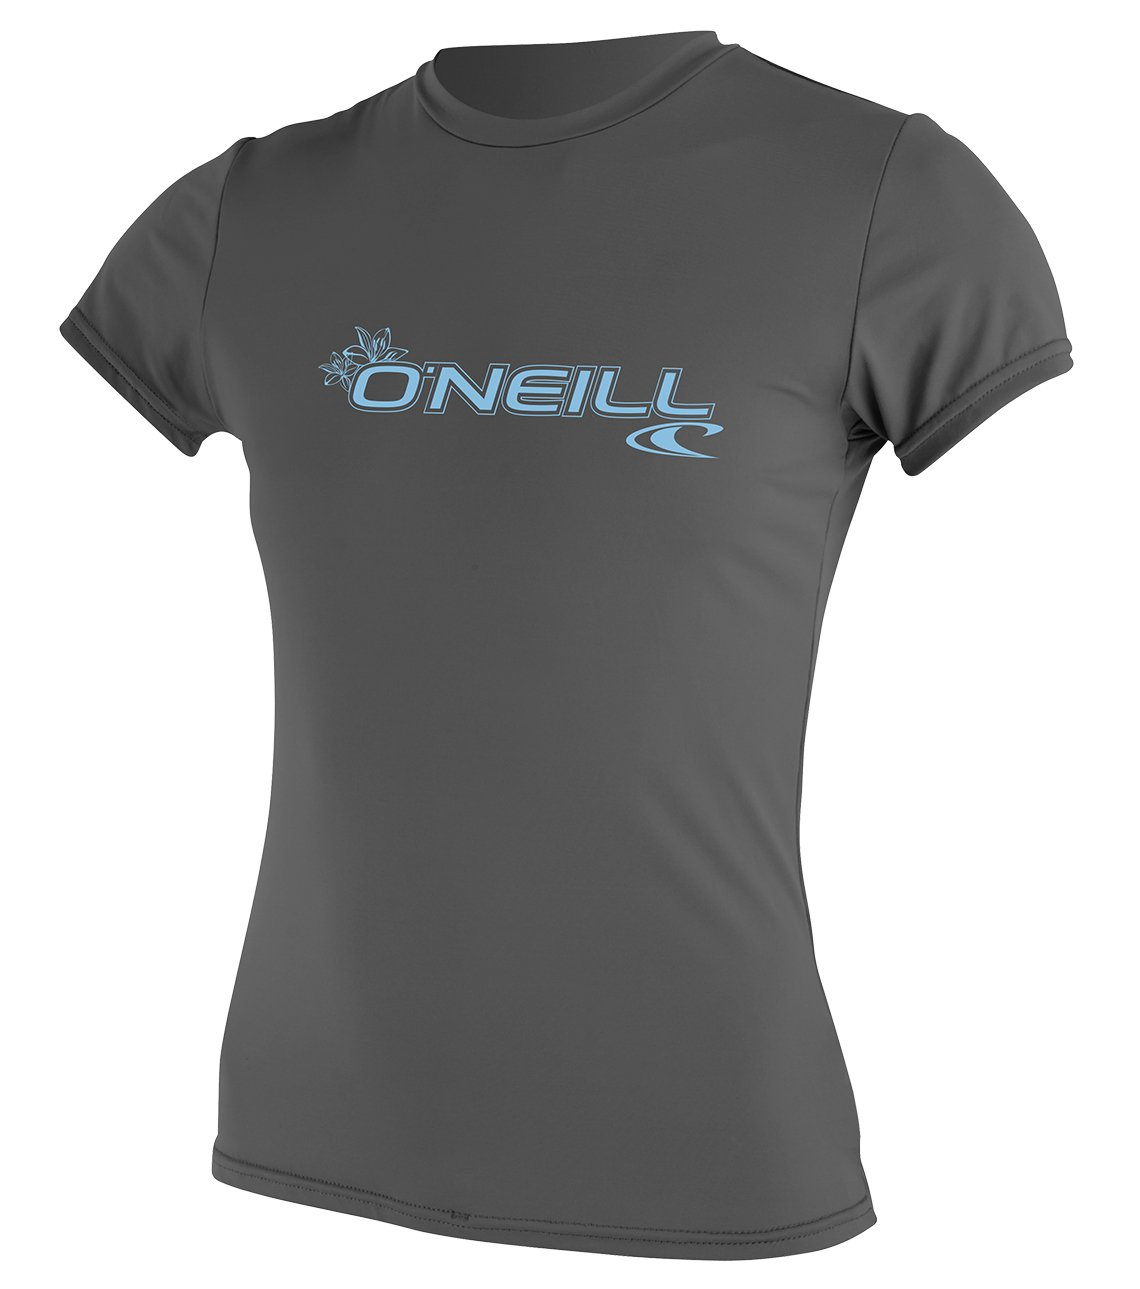 O'Neill  Women's Basic Skins Upf 50+ Short Sleeve Sun Shirt, Graphite, Medium by O'NEILL